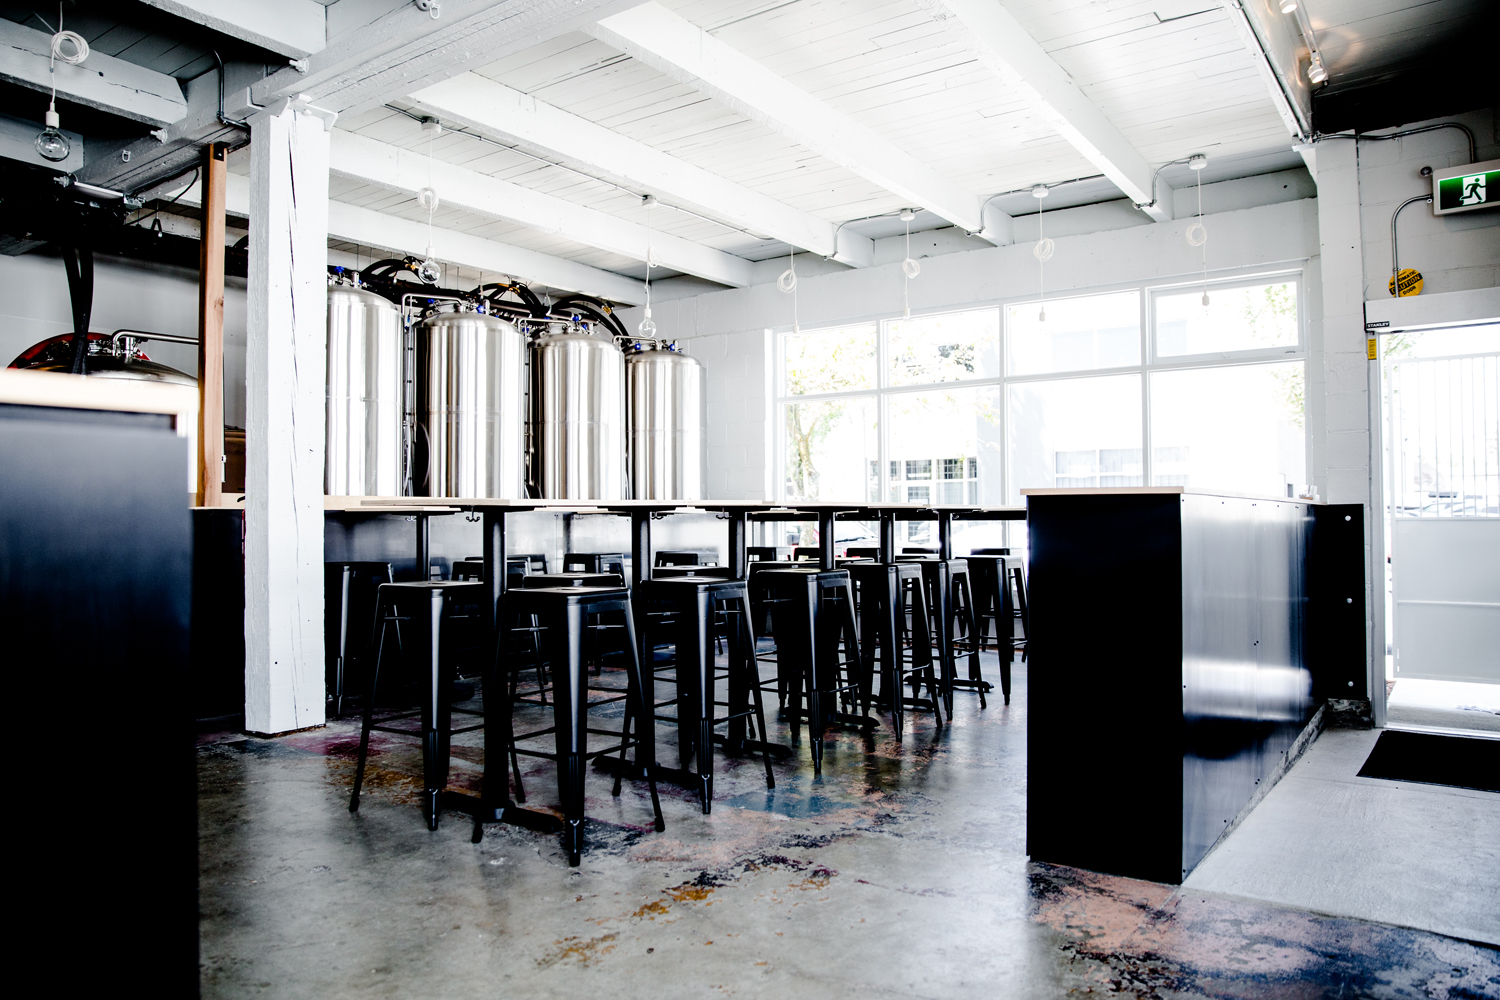 Interior of Faculty Brewing Co.